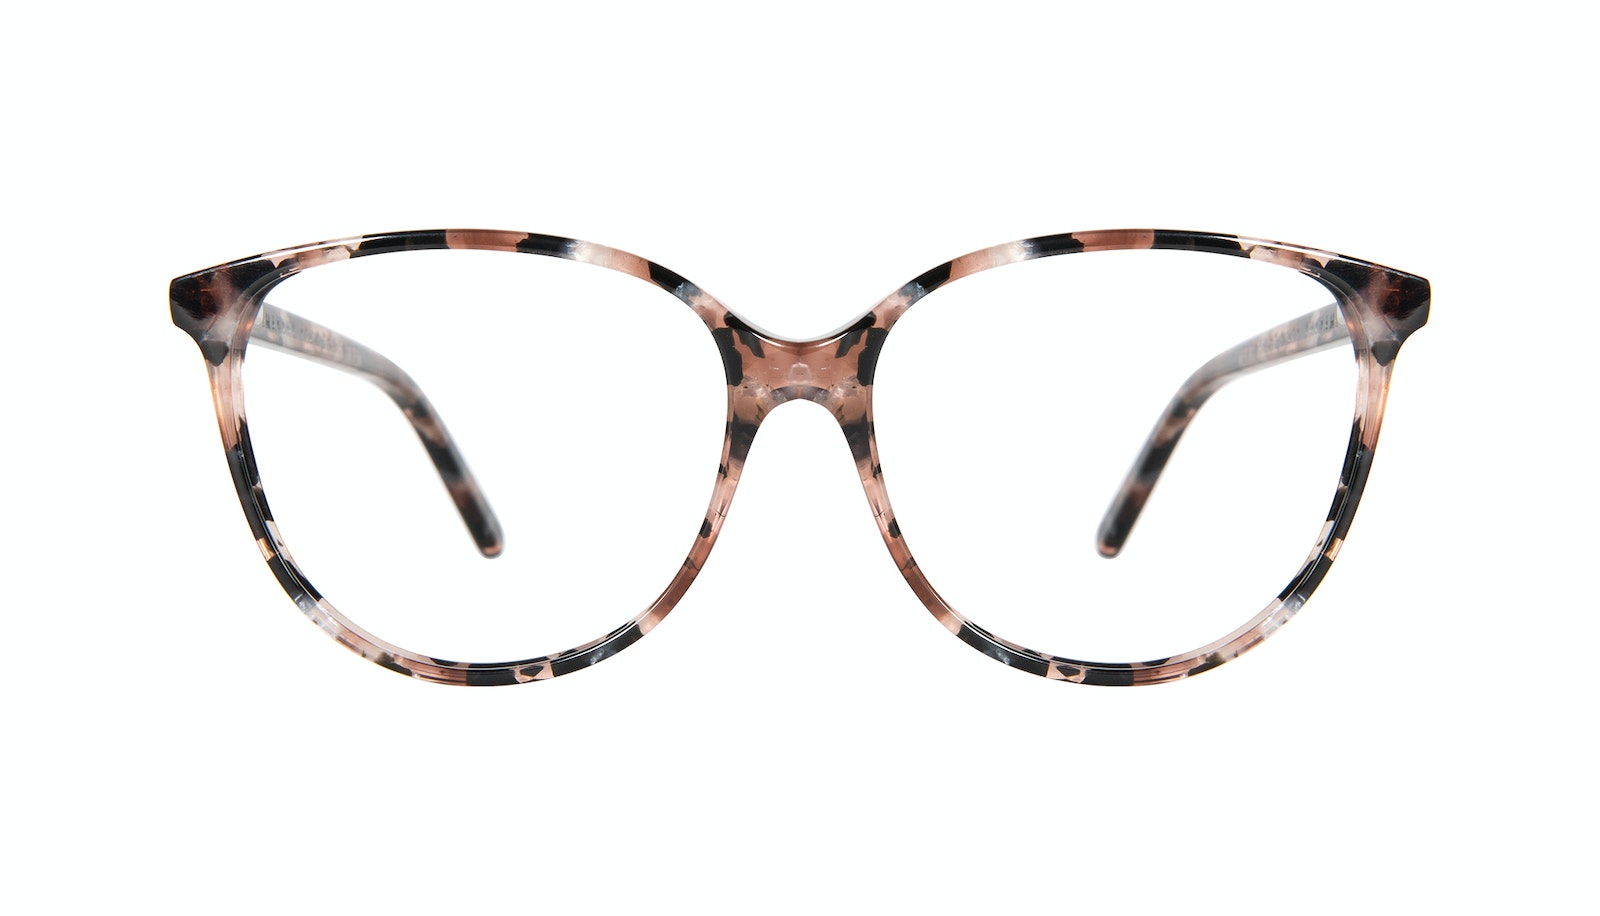 Affordable Fashion Glasses Cat Eye Eyeglasses Women Imagine M Pink Tortoise